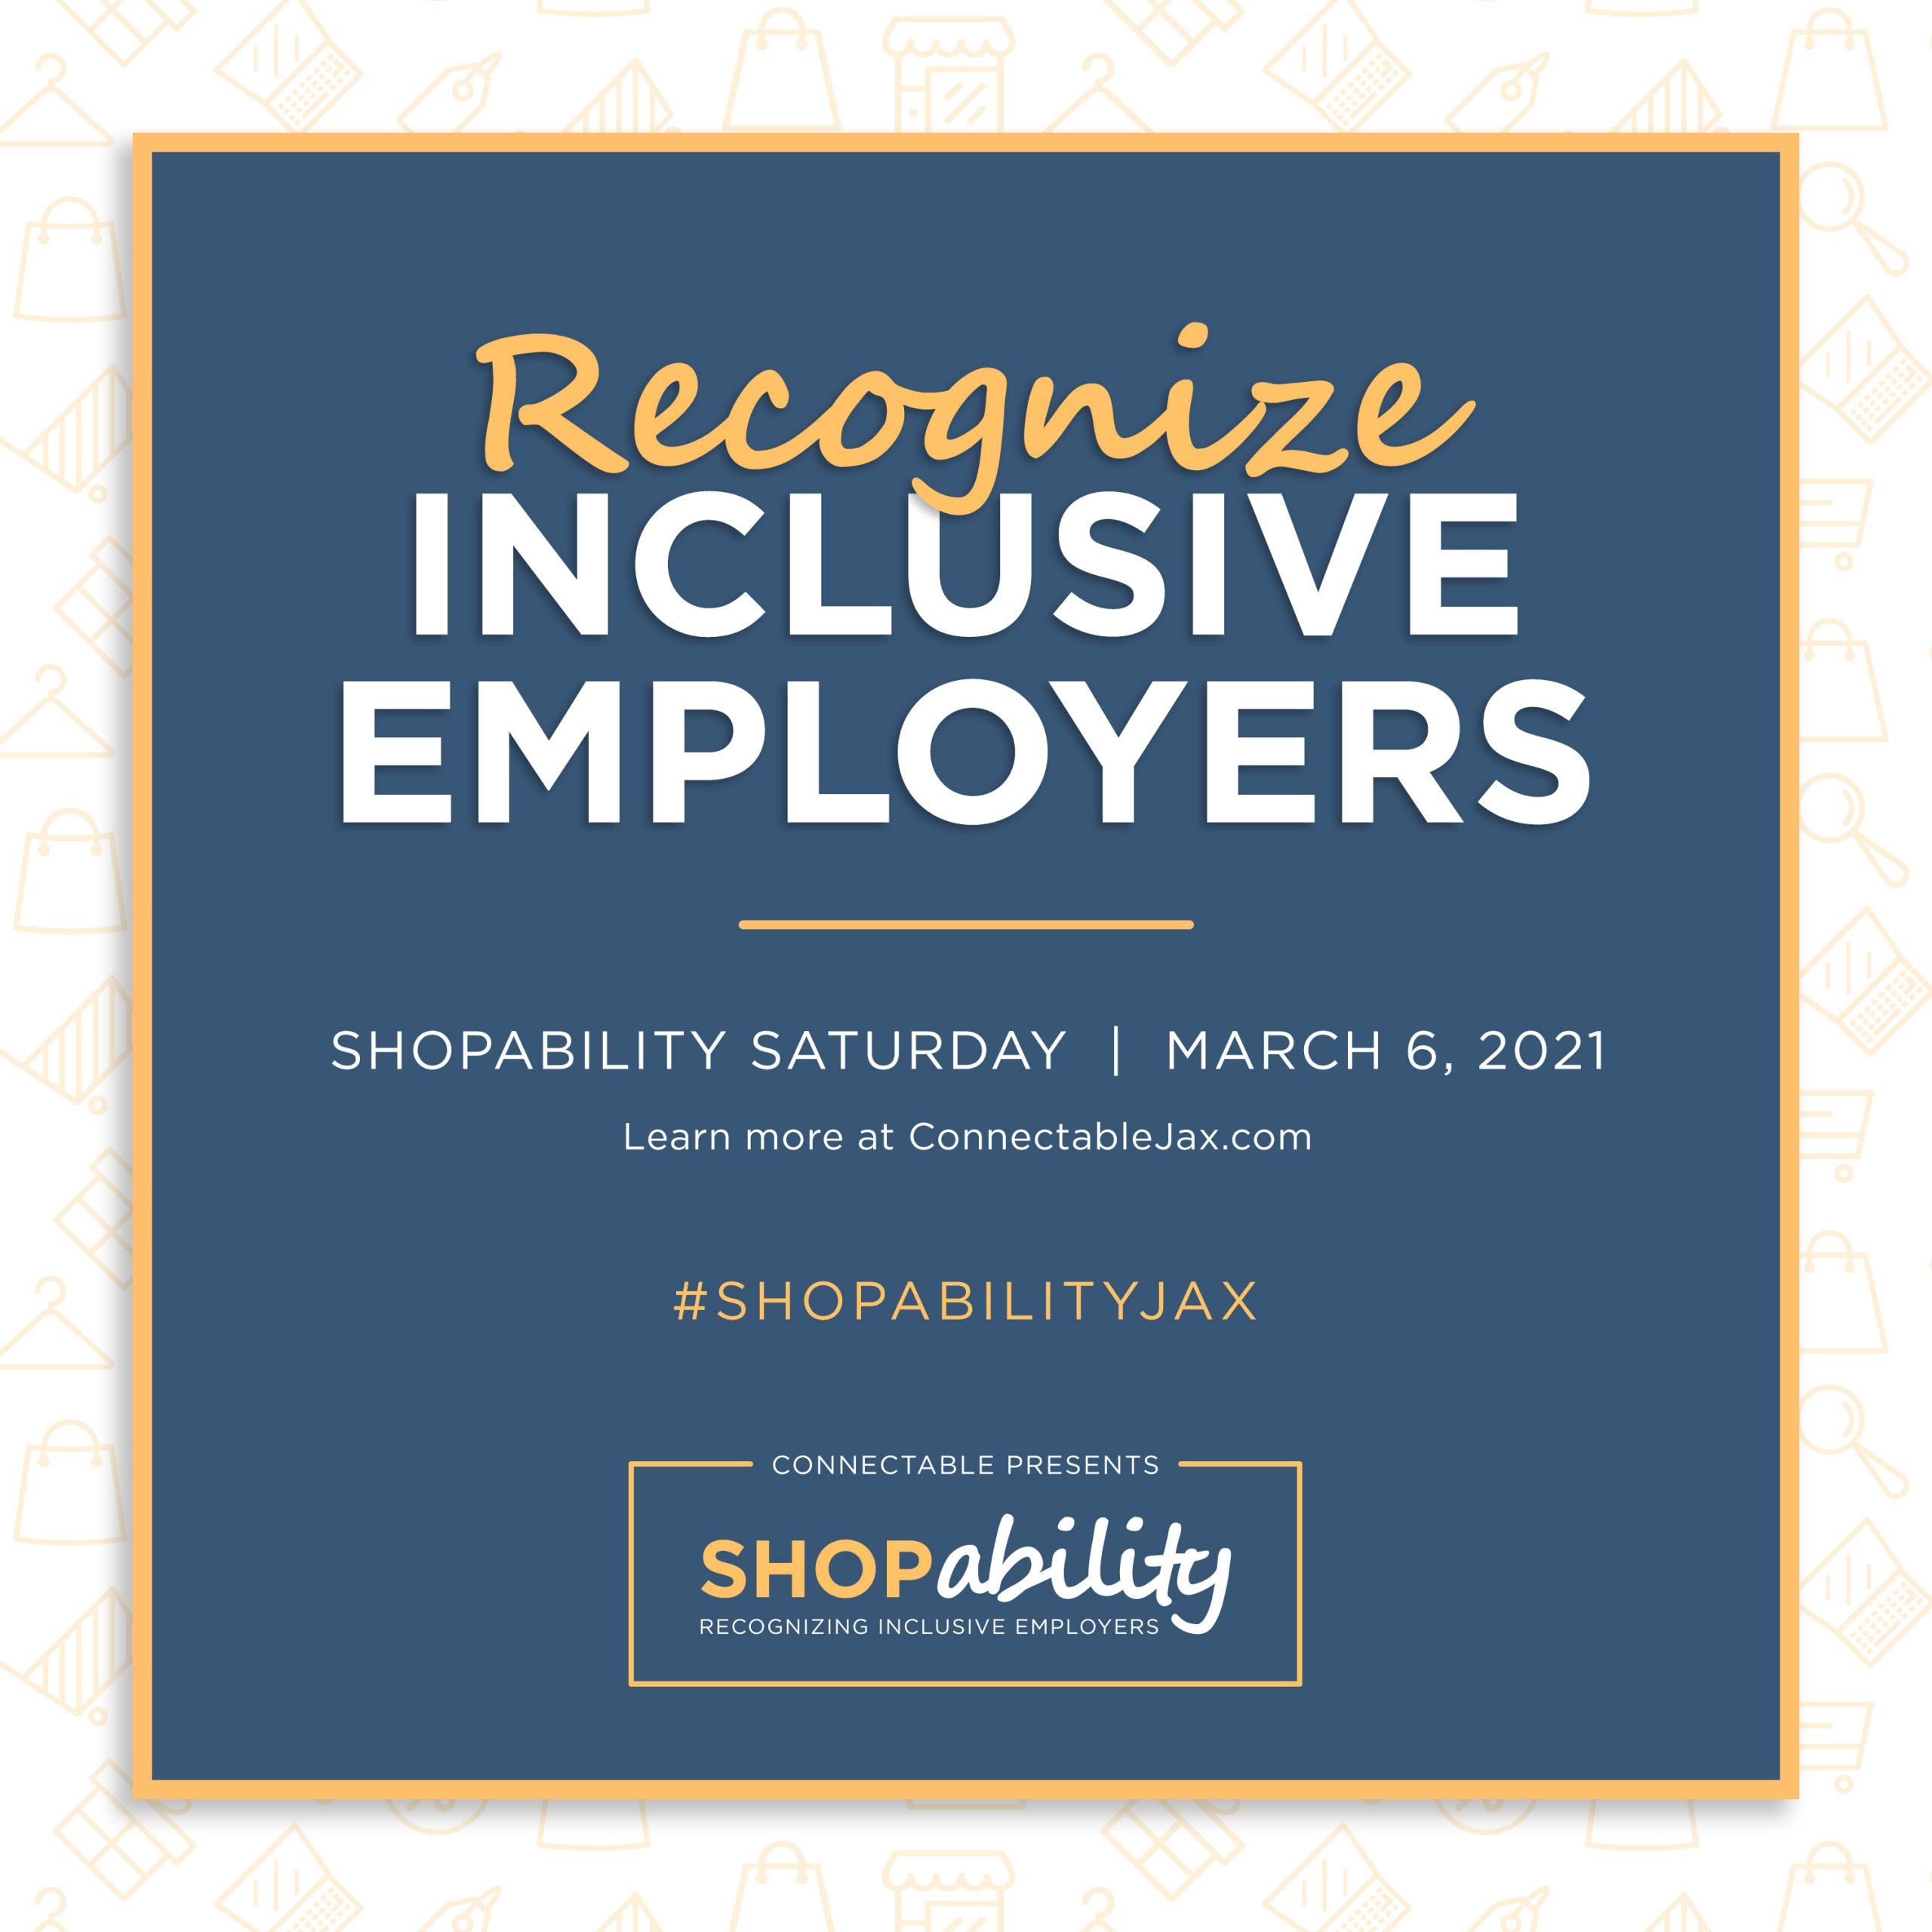 Recognize Inclusive Employers Shopability